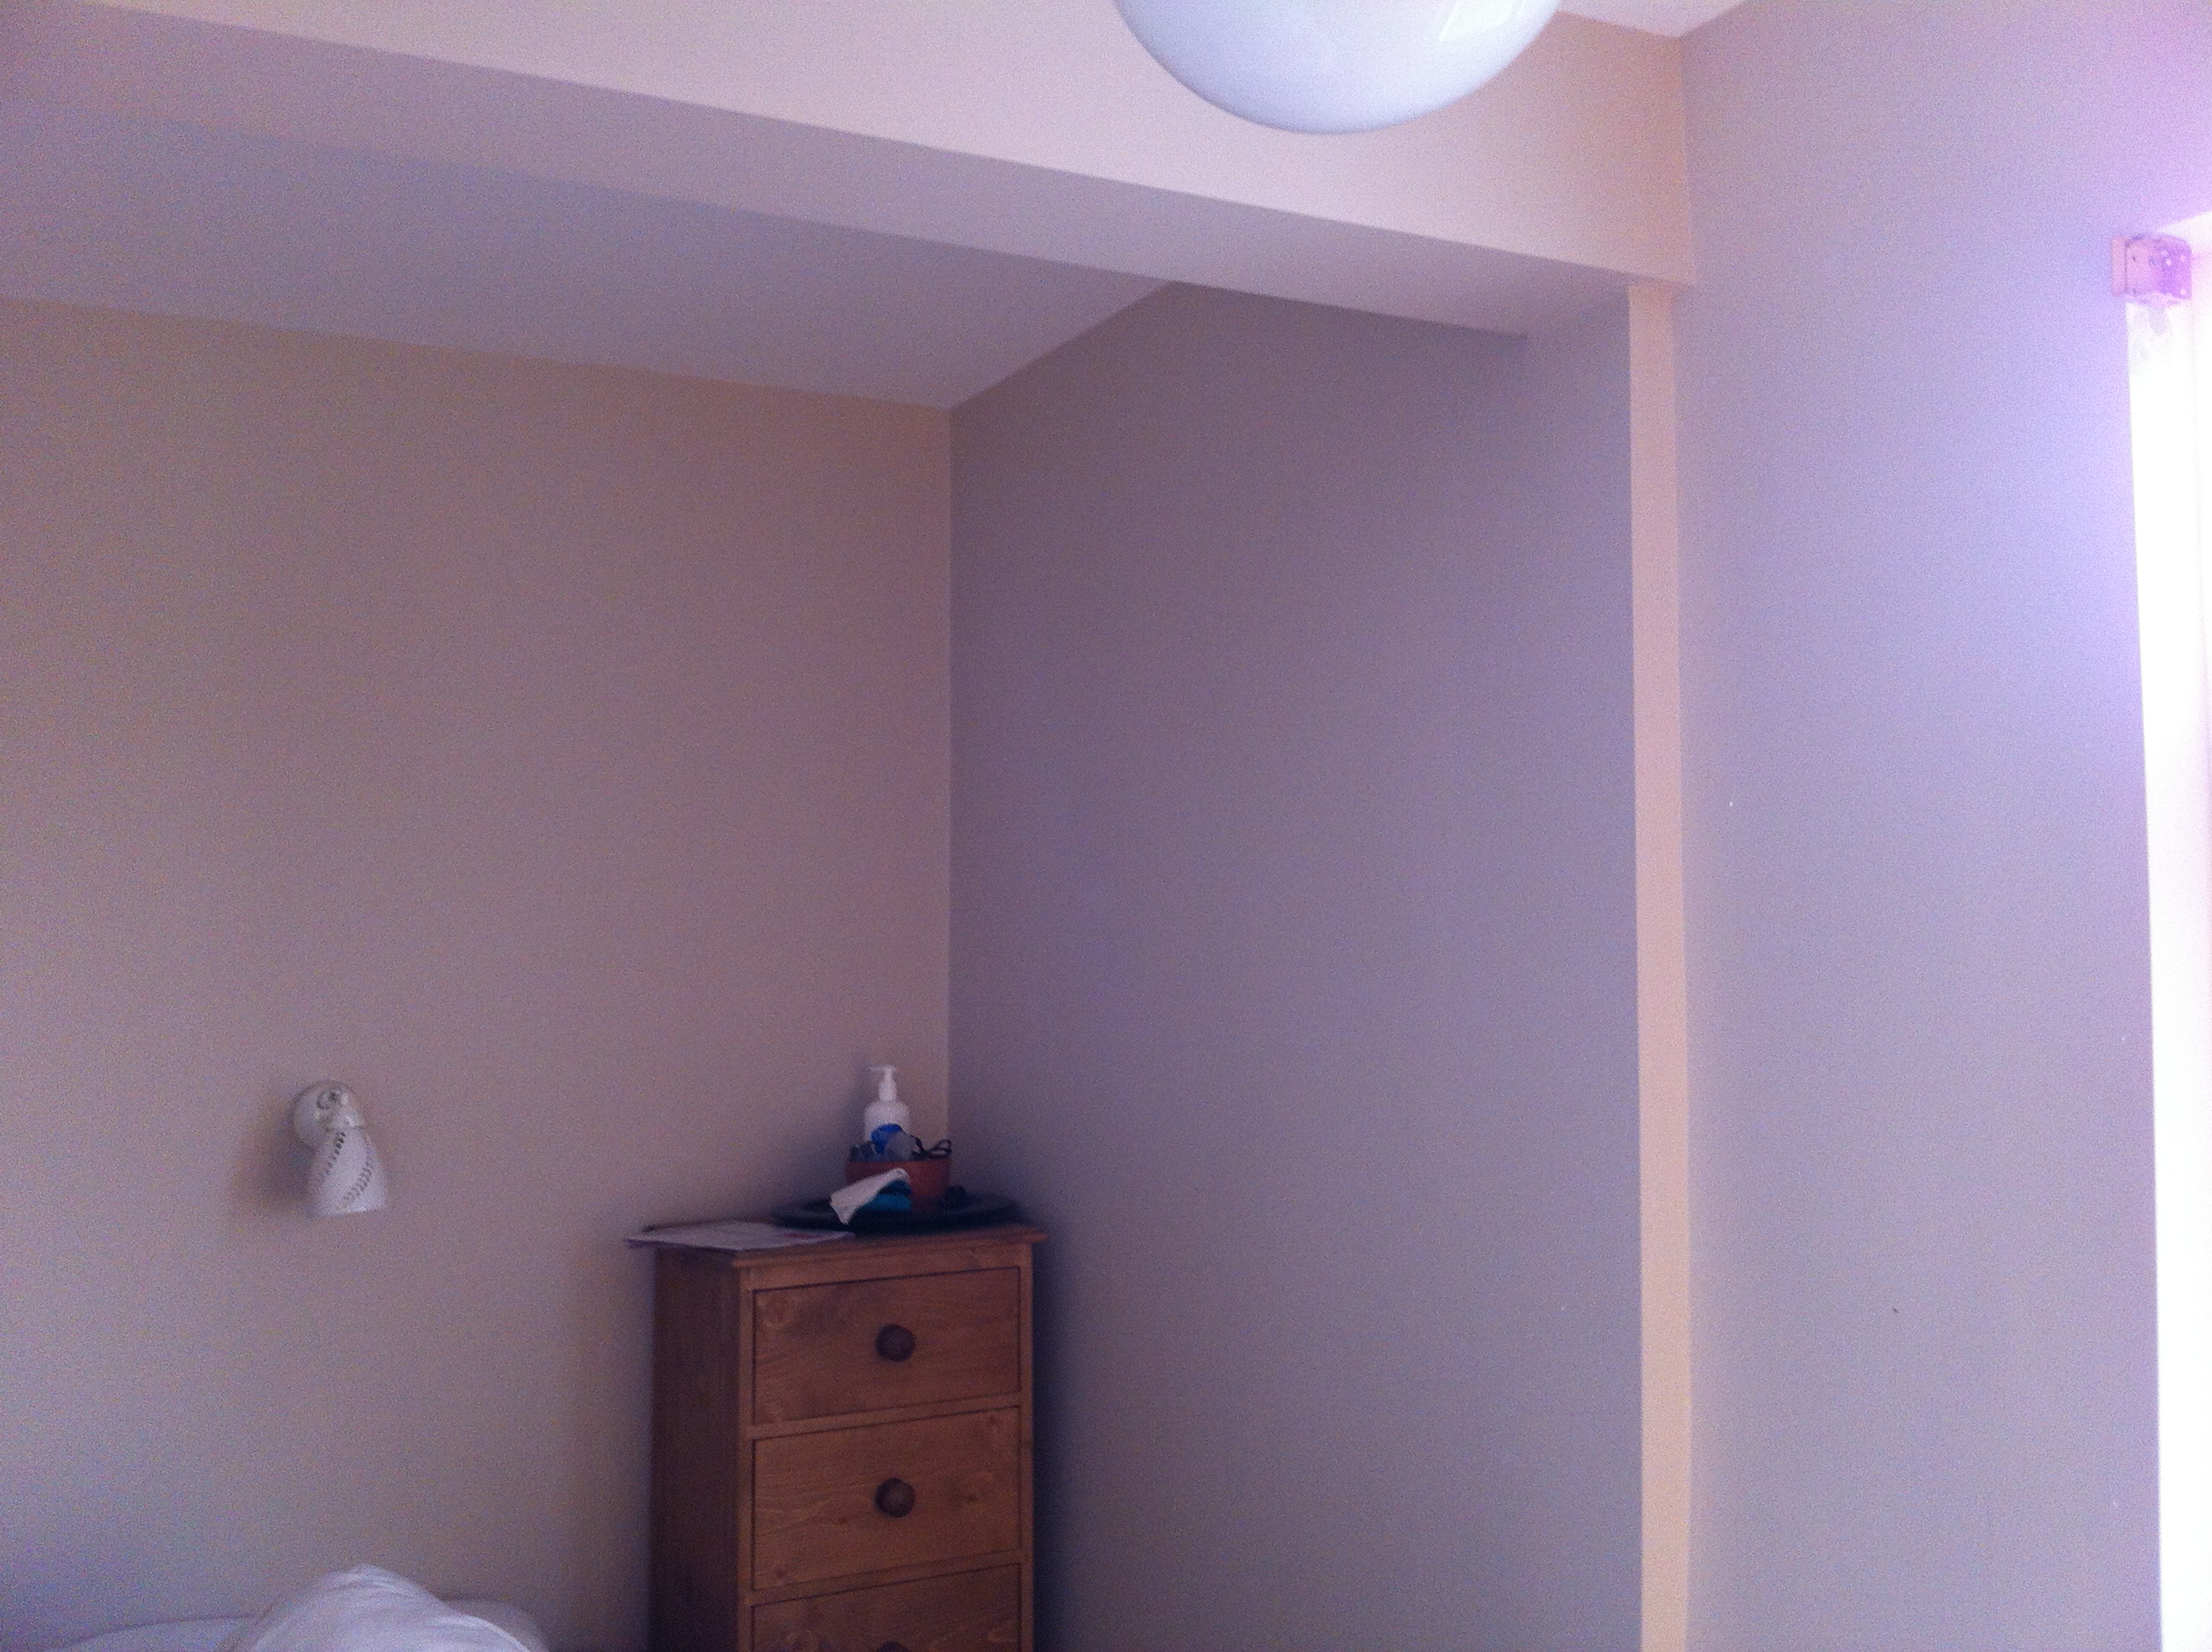 Plastering Bedroom